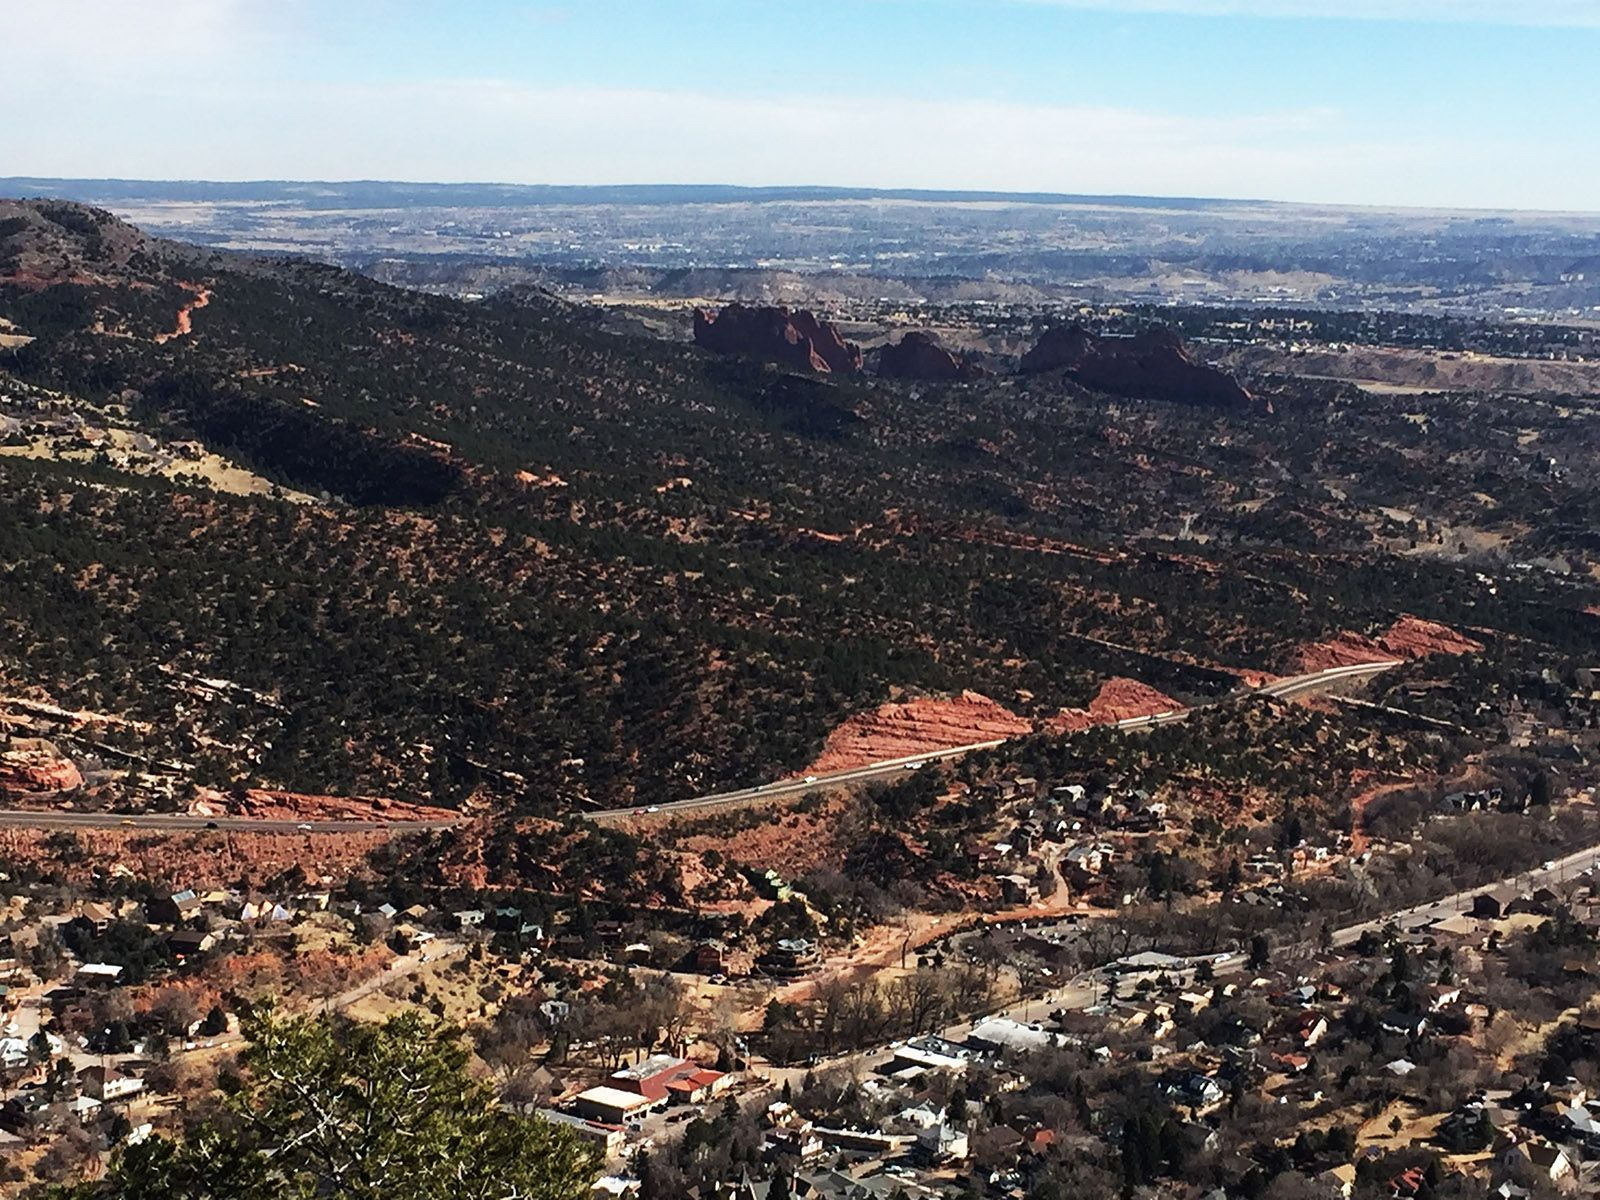 Hike Red Mountain Trail in Manitou Springs, Colorado #manitousprings